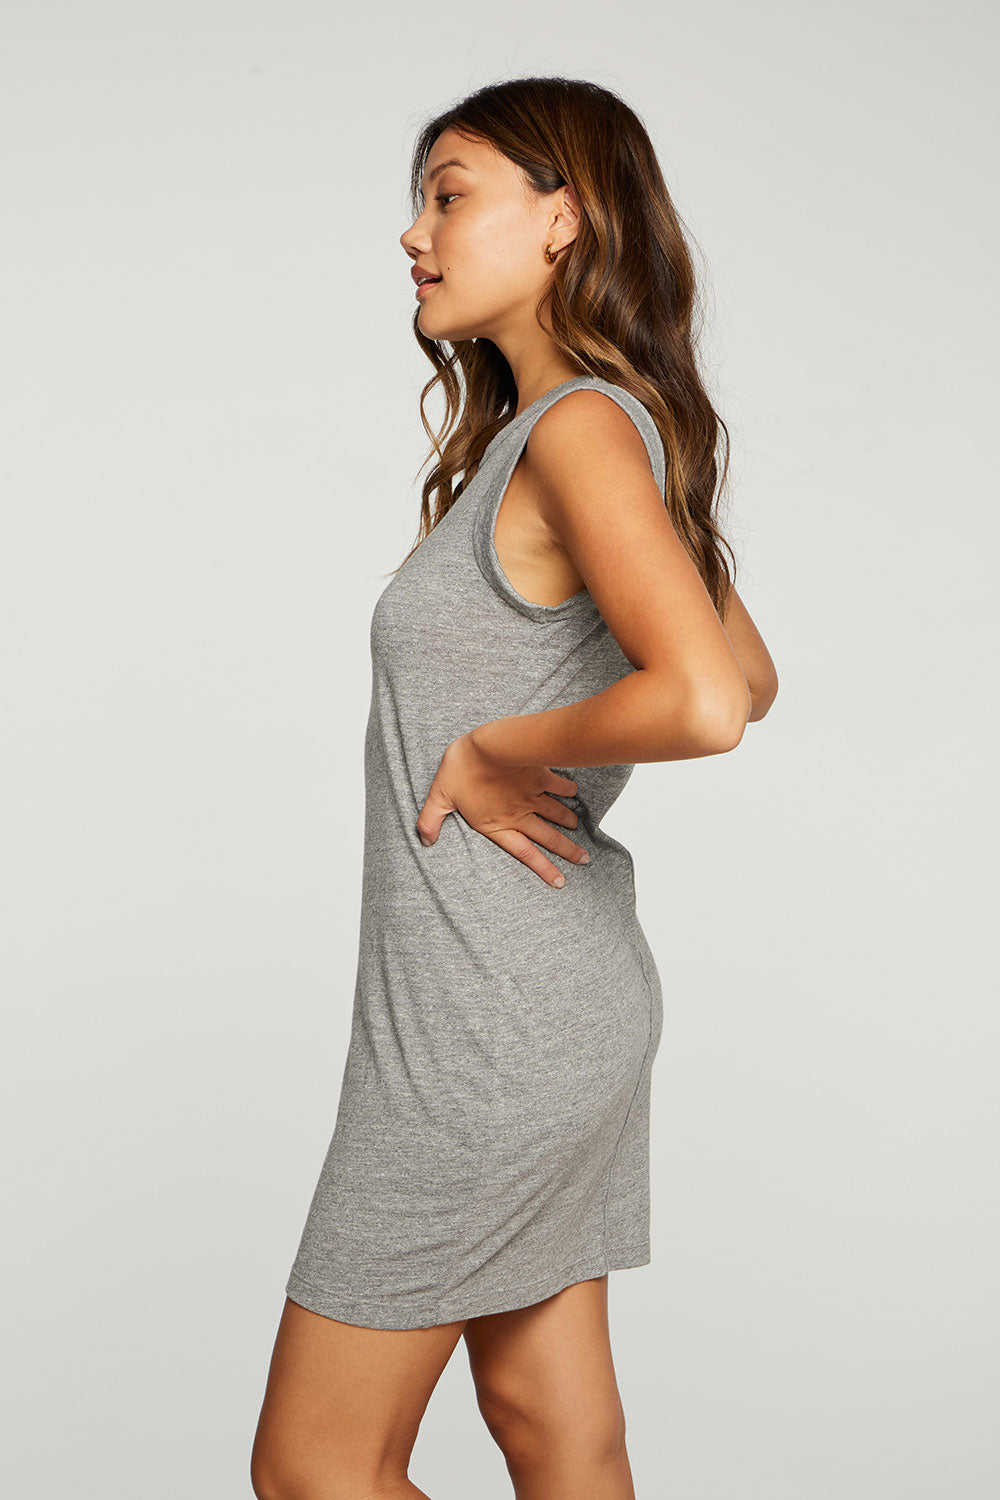 Triblend Jersey Rolled Armhole Tank Dress WOMENS - chaserbrand